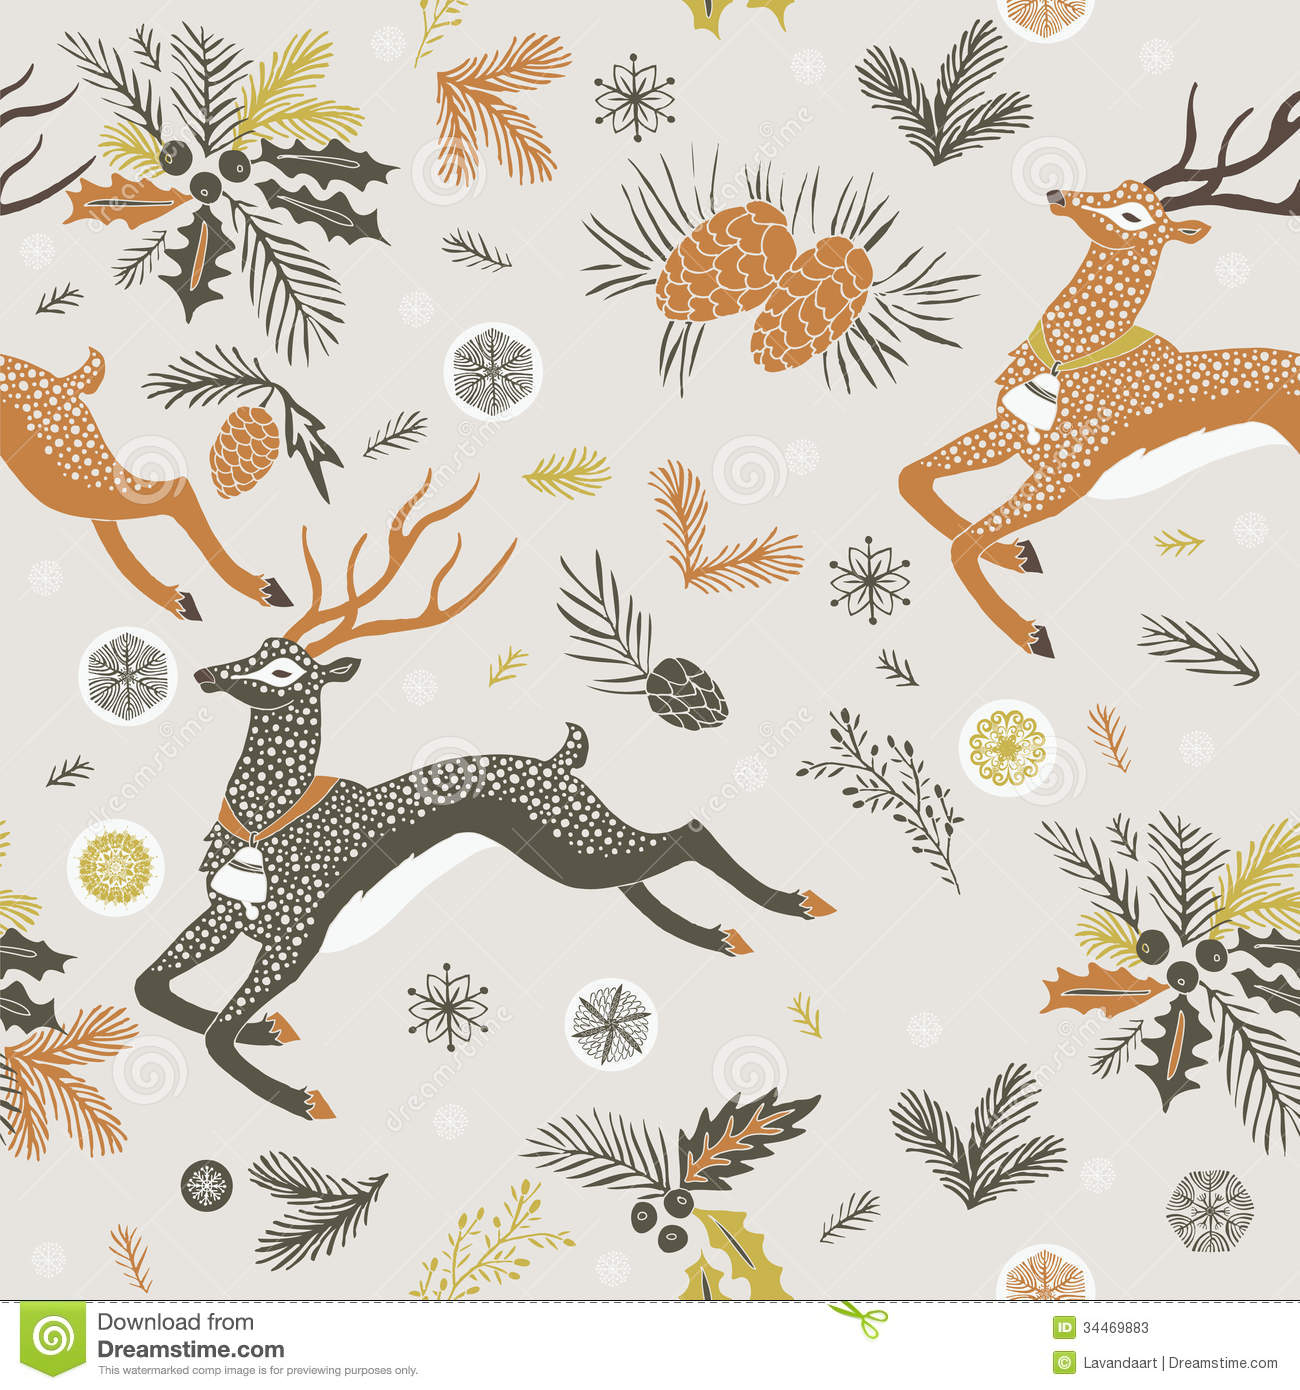 ... seasonal foliage and snowflakes suitable for print and wrapping paper